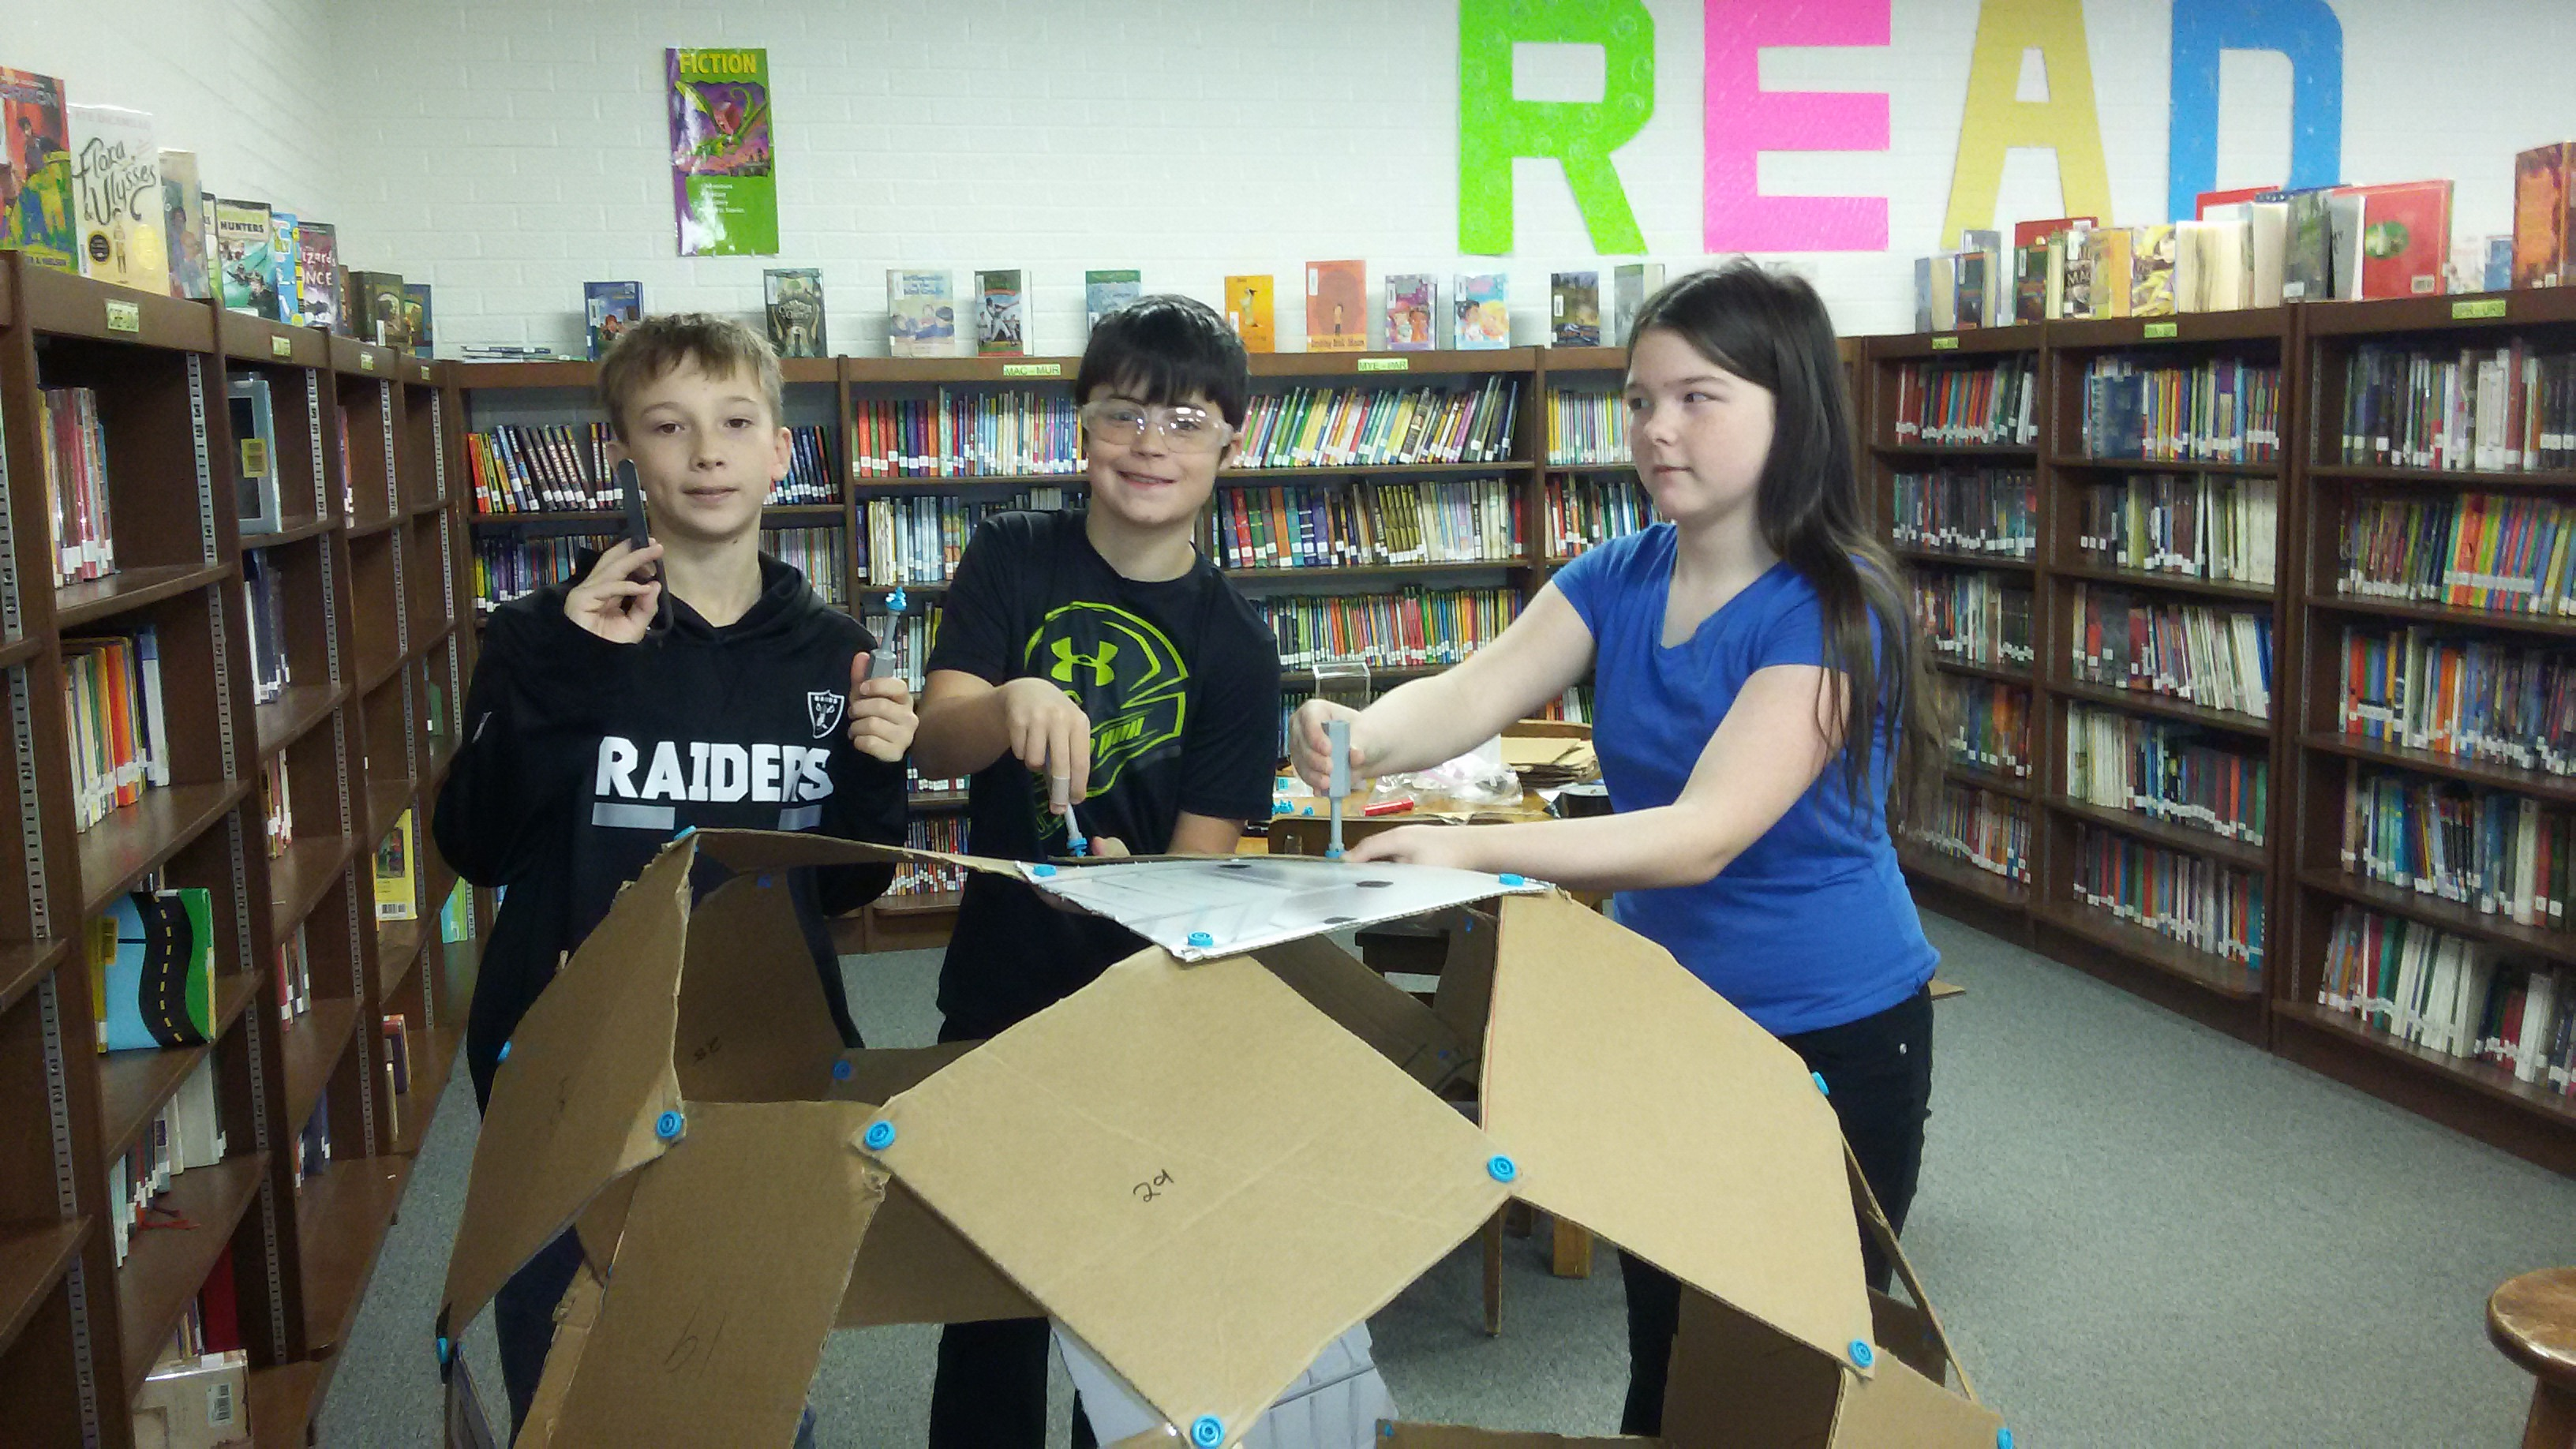 Middle school students in library working on a project